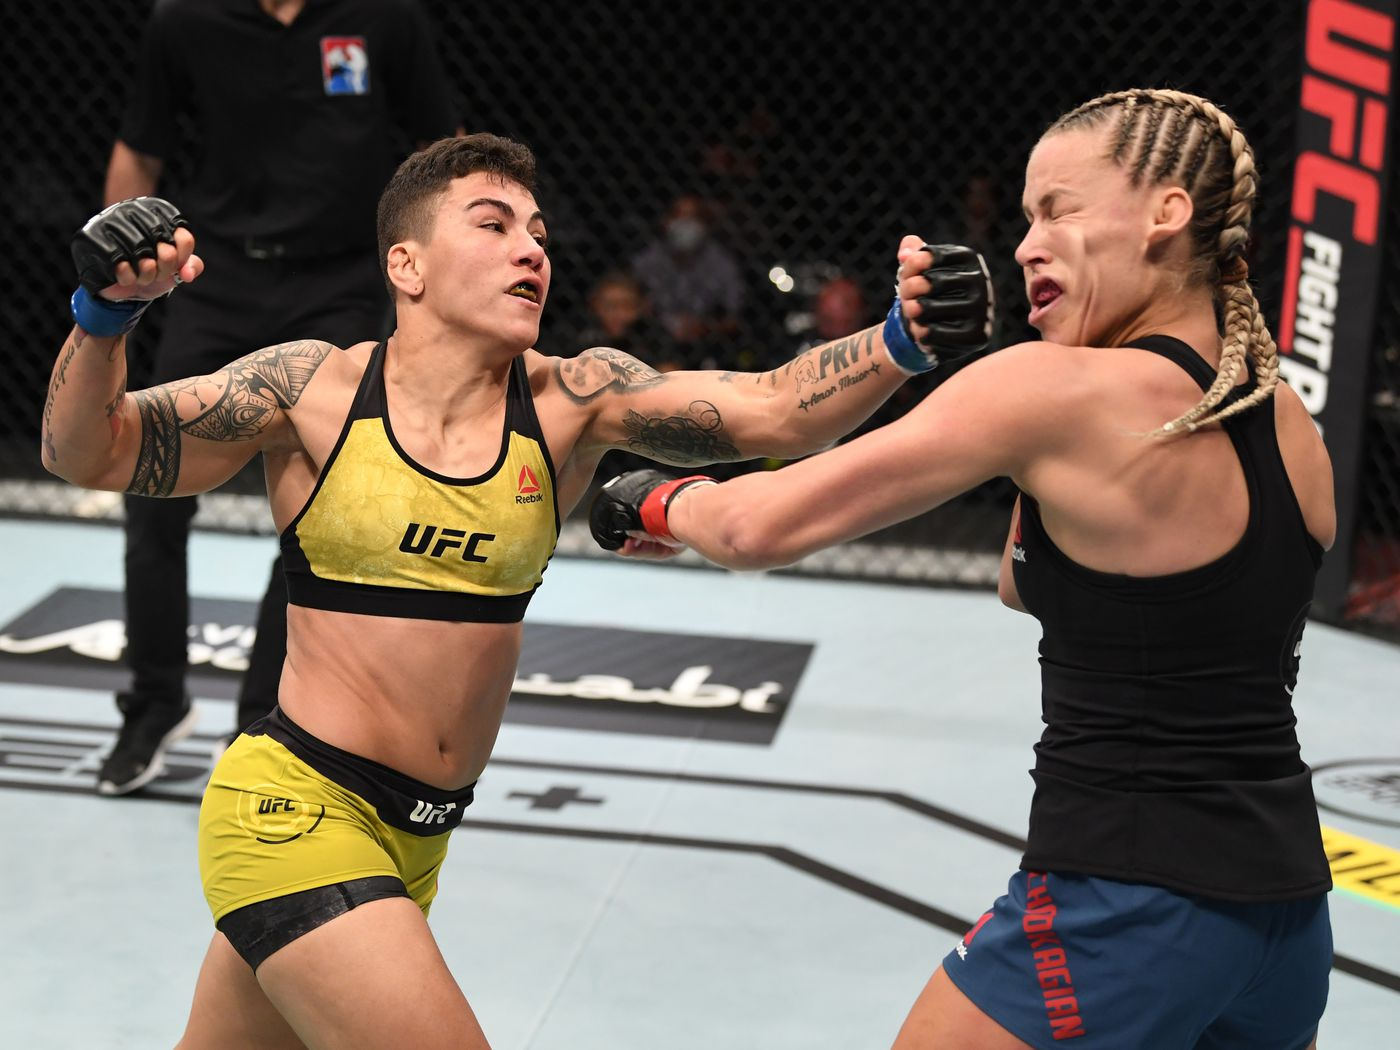 UFC Fight Island 6 video: Jessica Andrade finishes Katlyn Chookagian in first round with punishing body shots - MMA Fighting